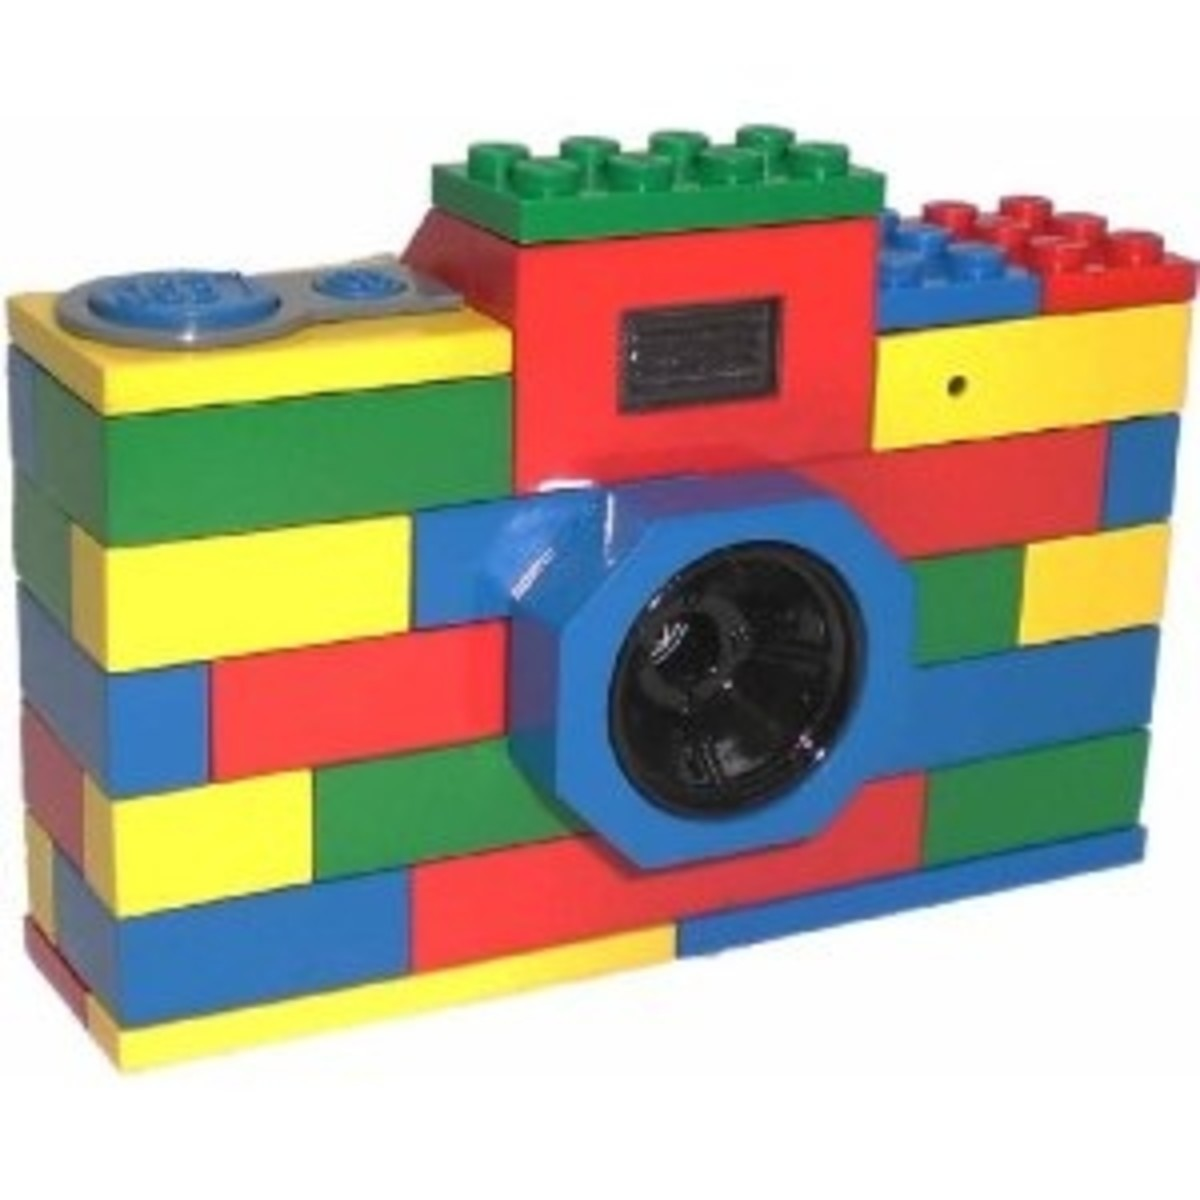 Buy Lego Digital Camera and Lego Stop Motion Video Camera Online